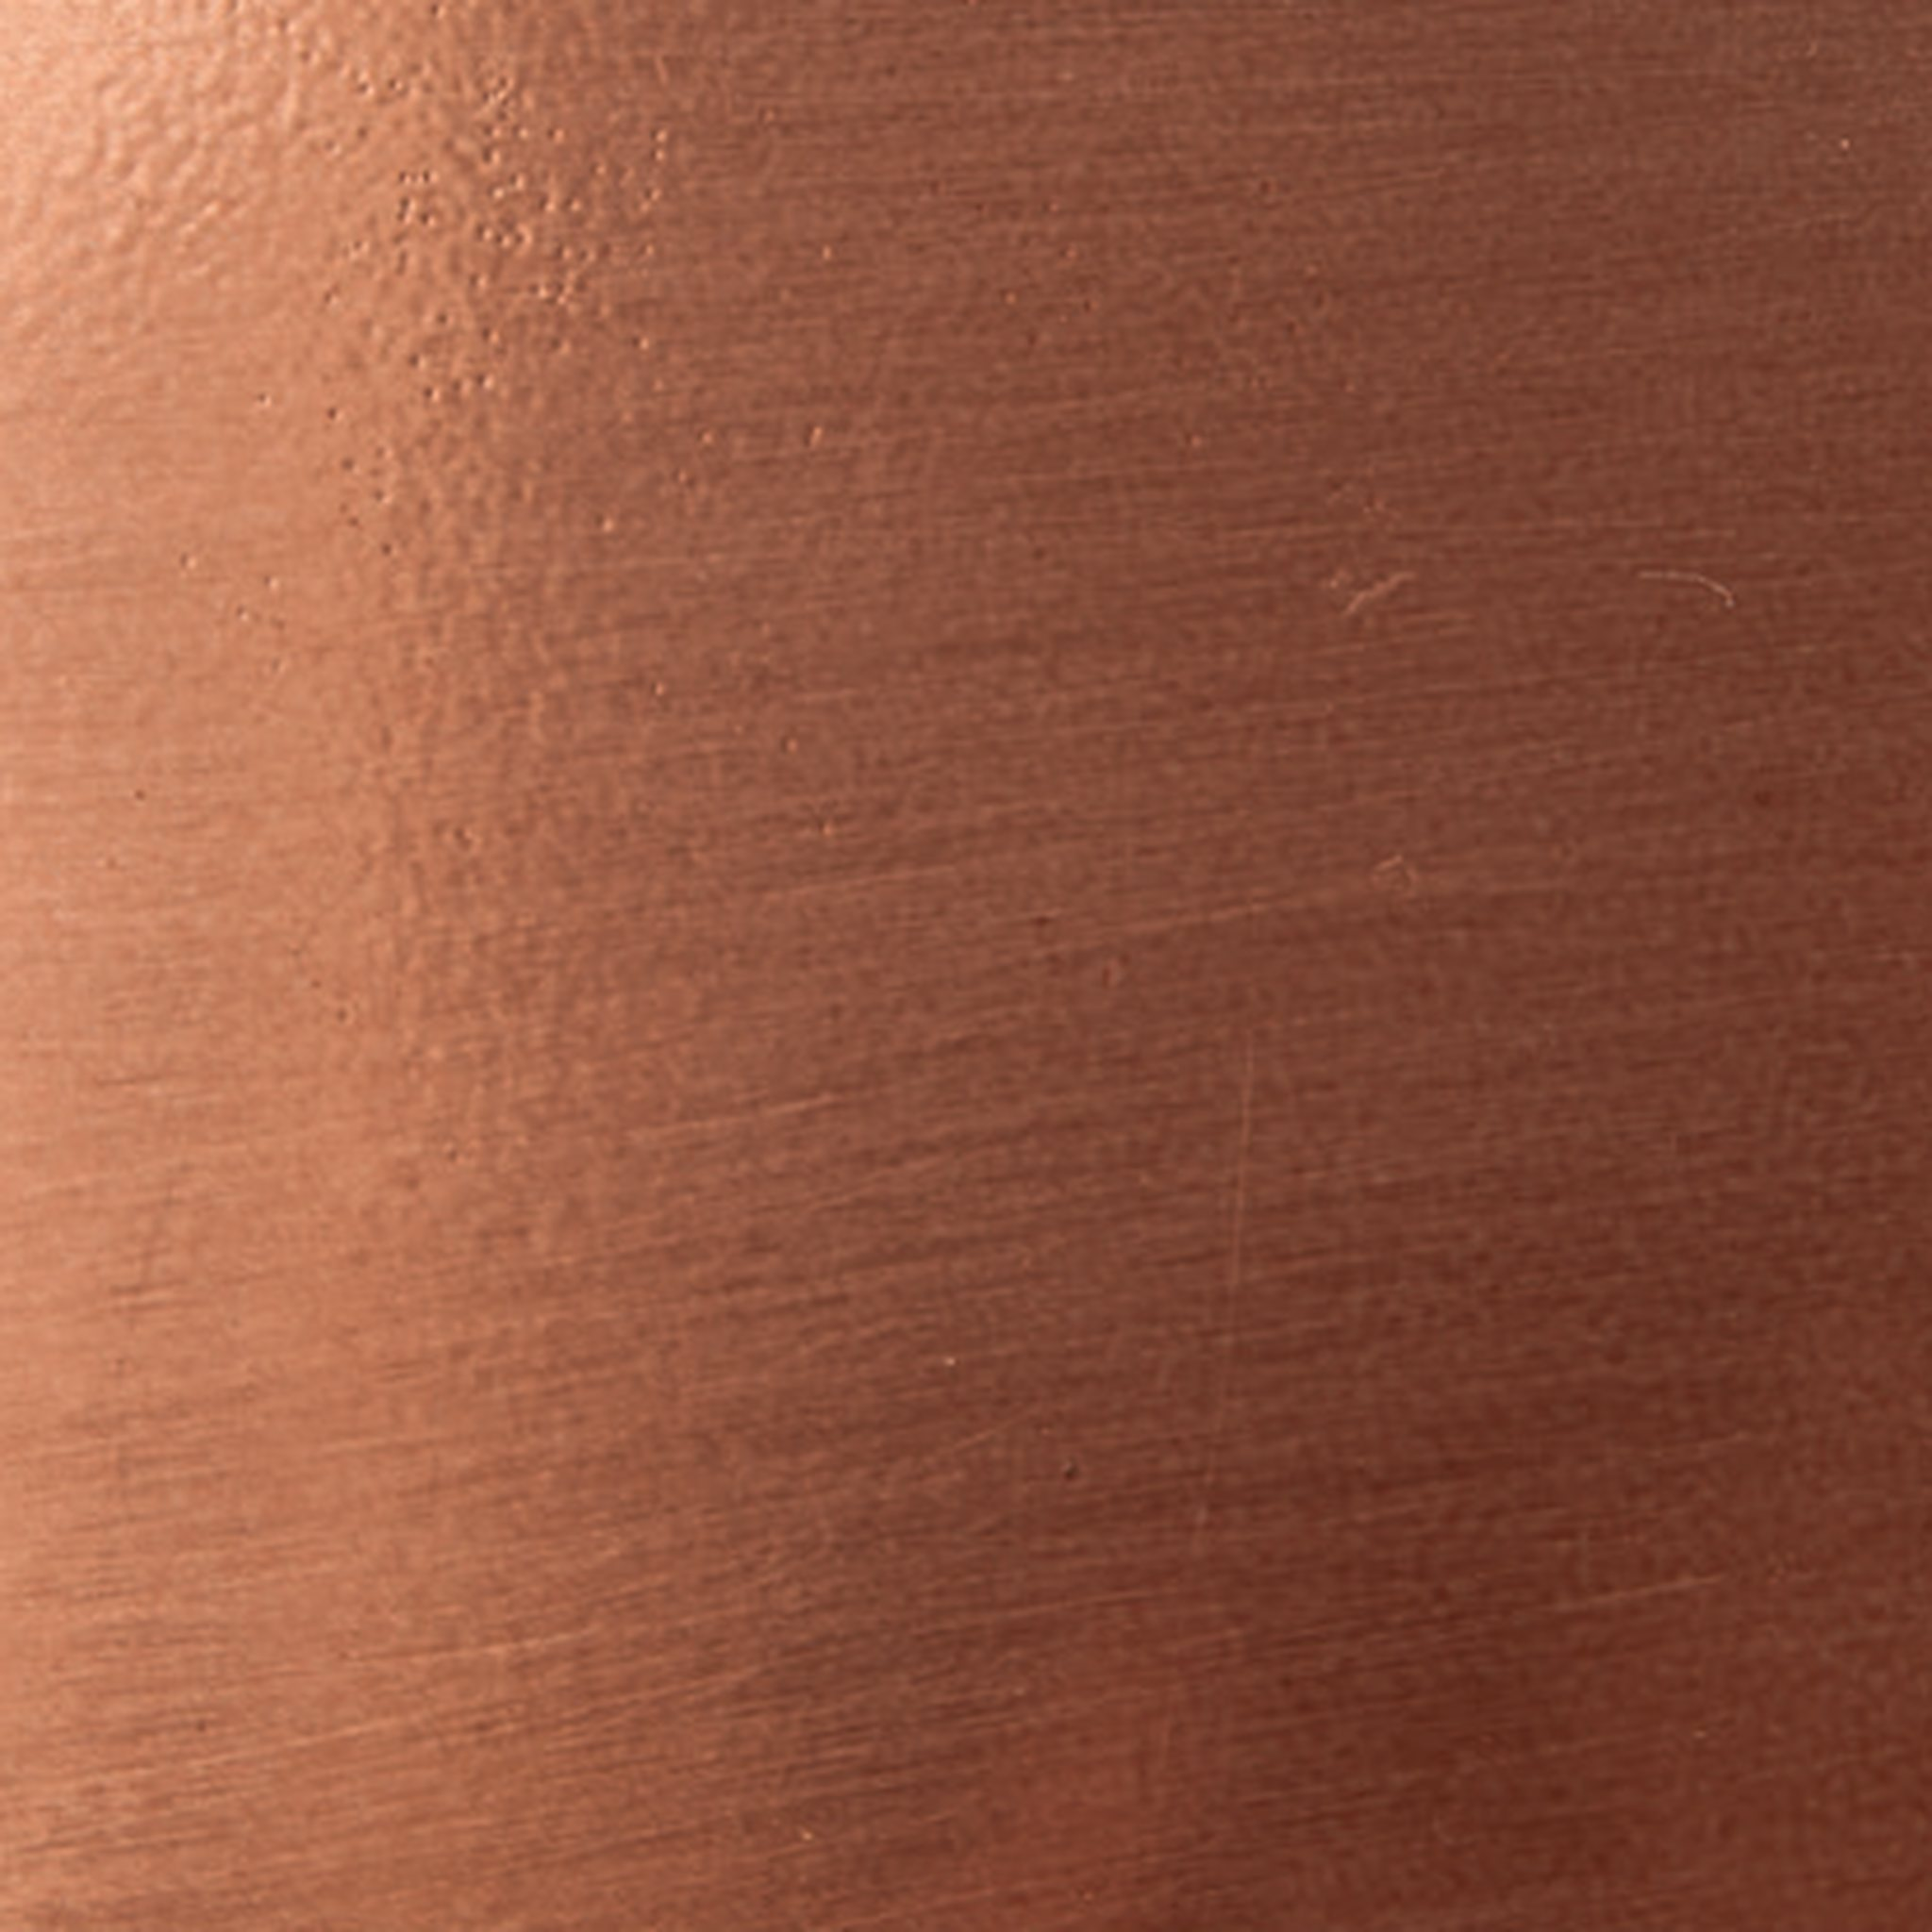 finishes-painted-brushed-copper-bespoke-northern-lights.jpg